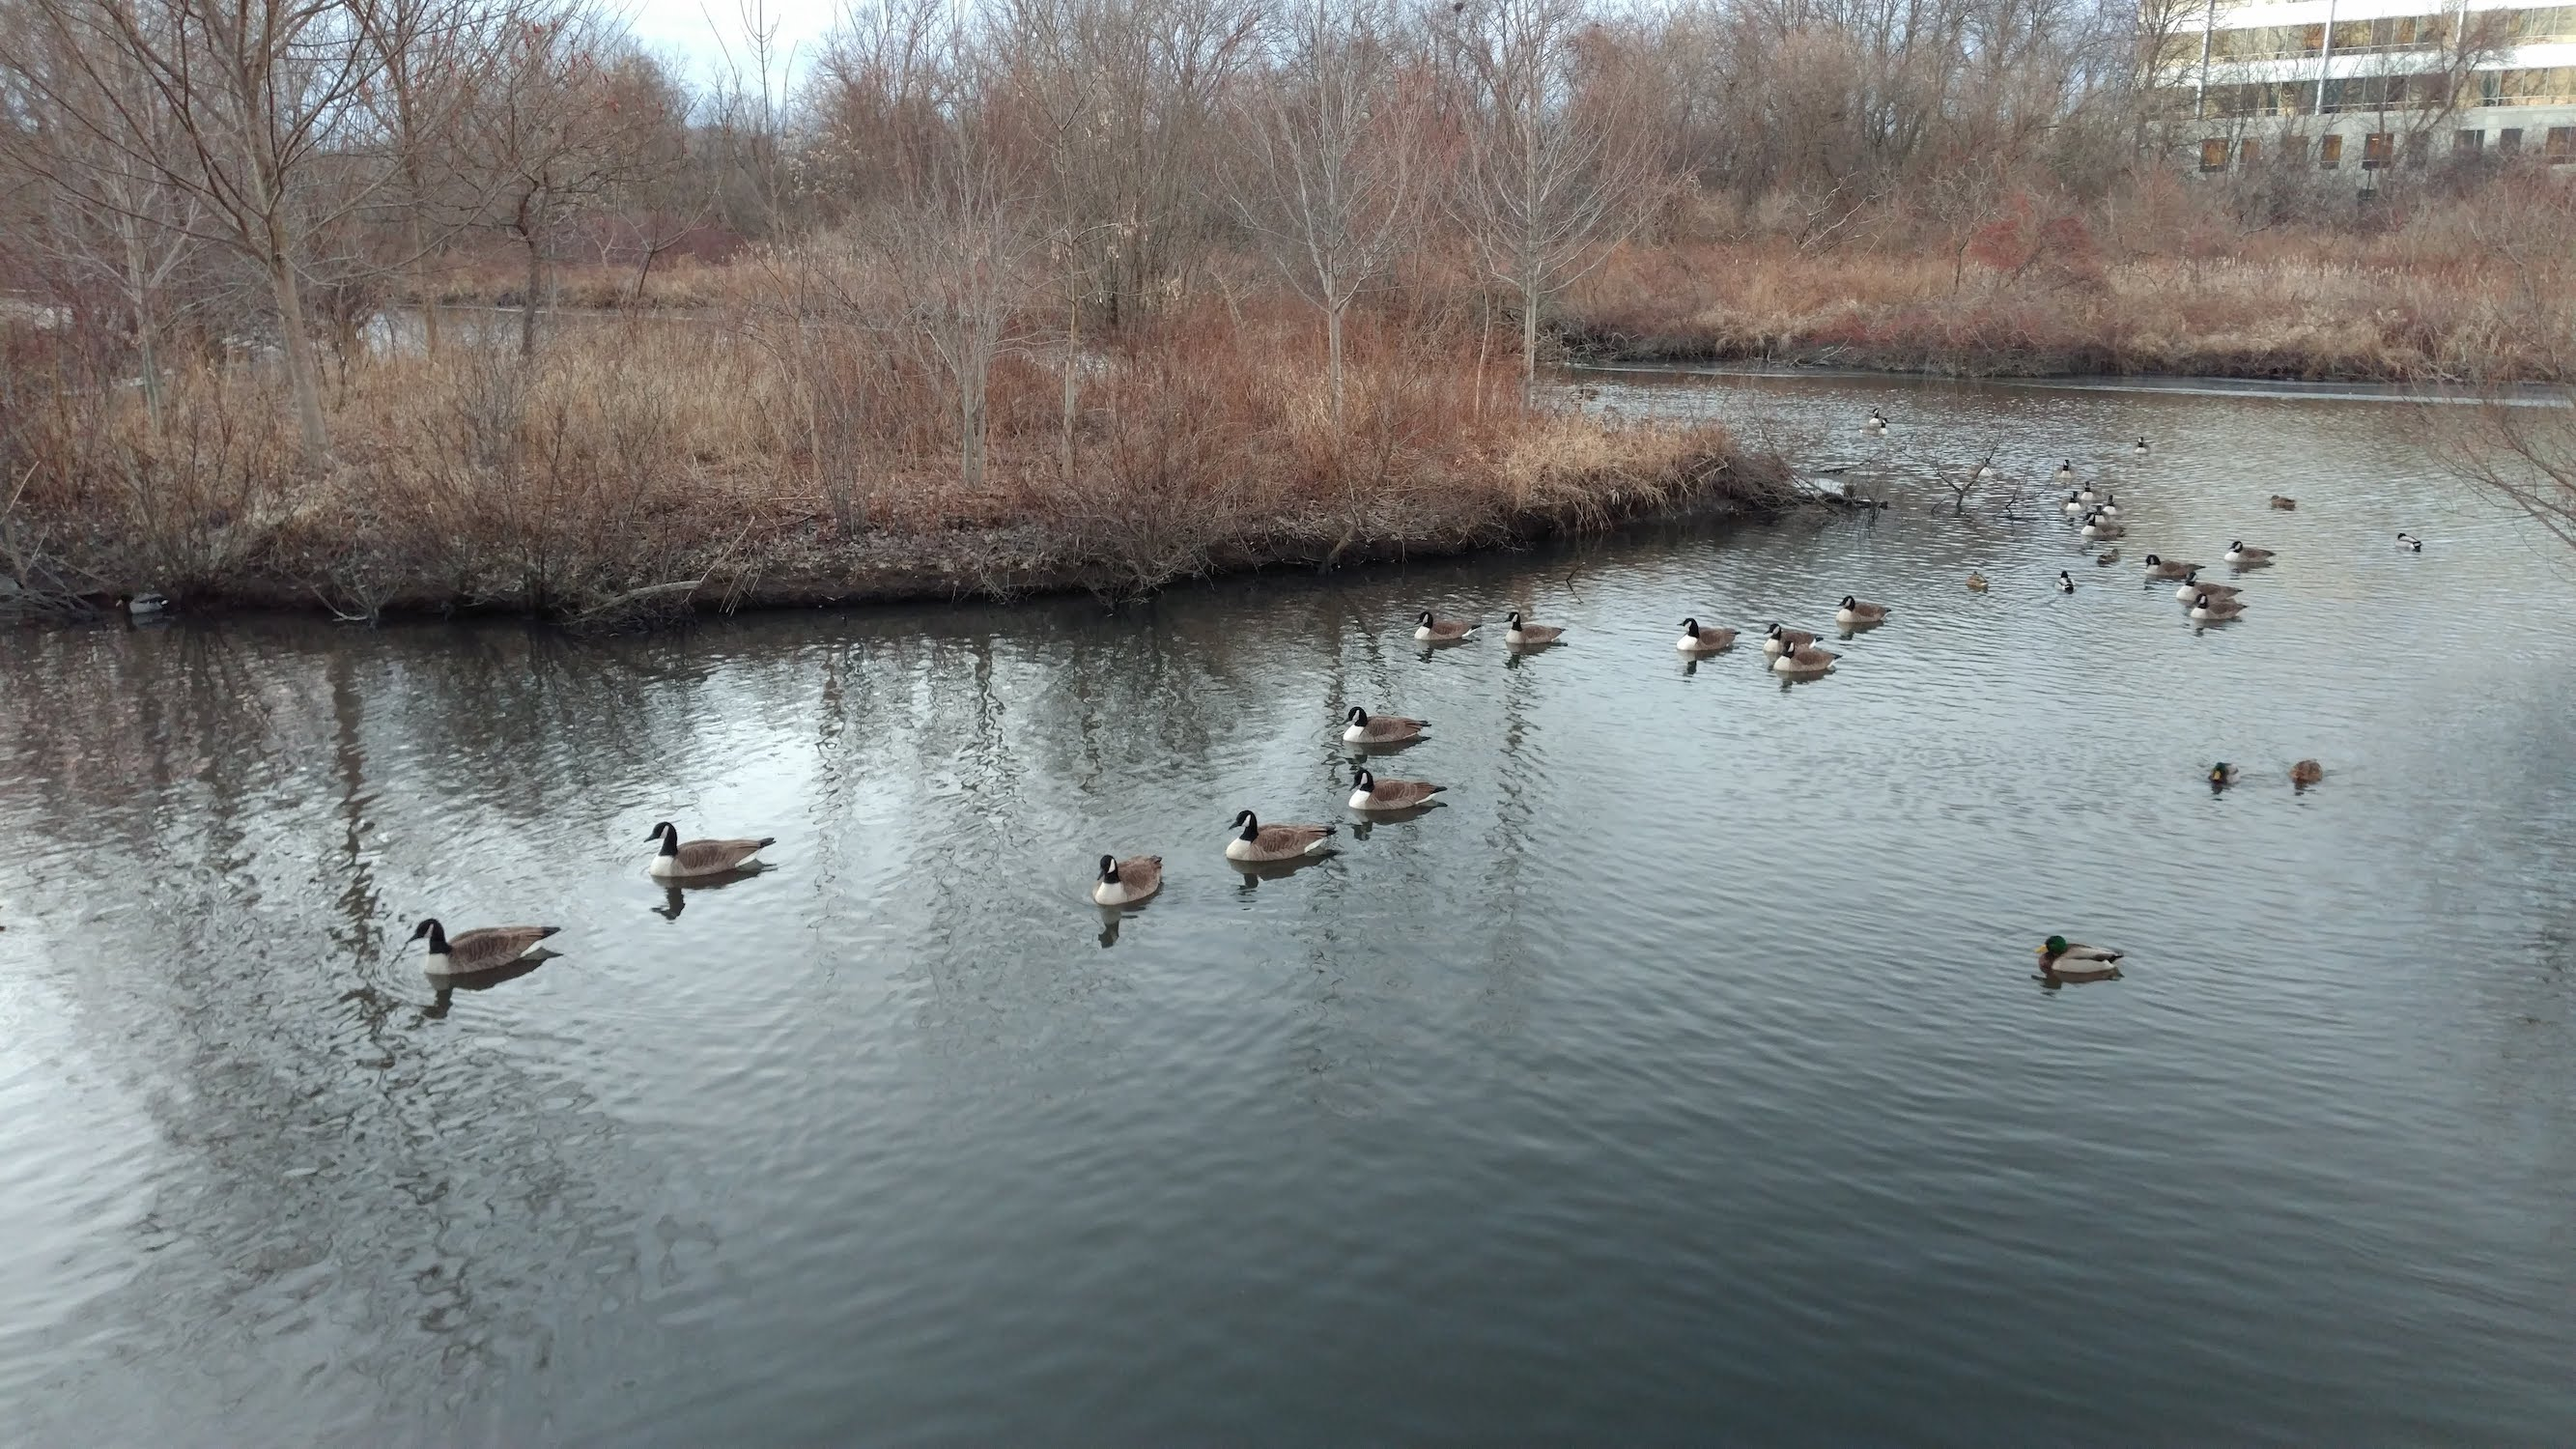 many geese, some ducks